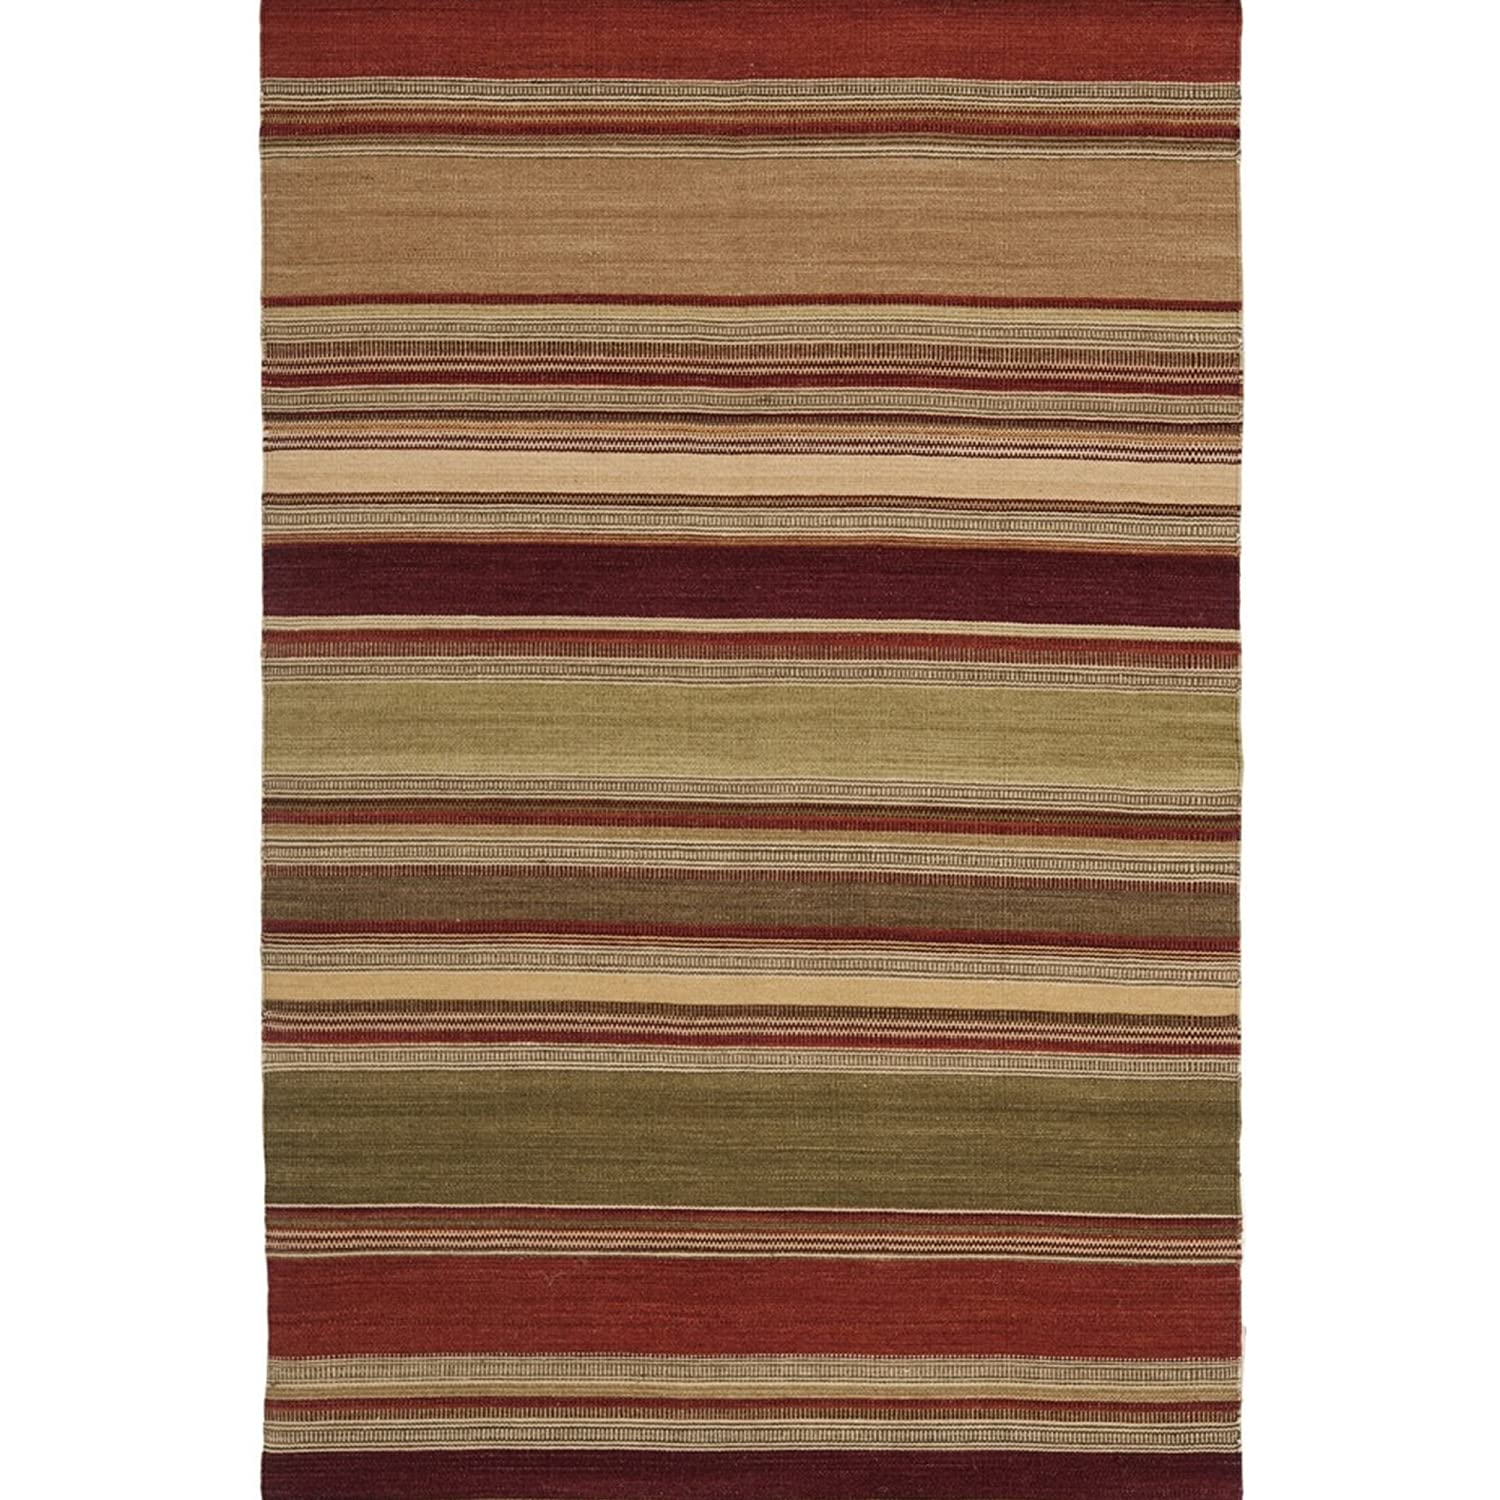 safavieh kristof kilim tapis laine rouge 121 x 182 cm 683726974475 ebay. Black Bedroom Furniture Sets. Home Design Ideas